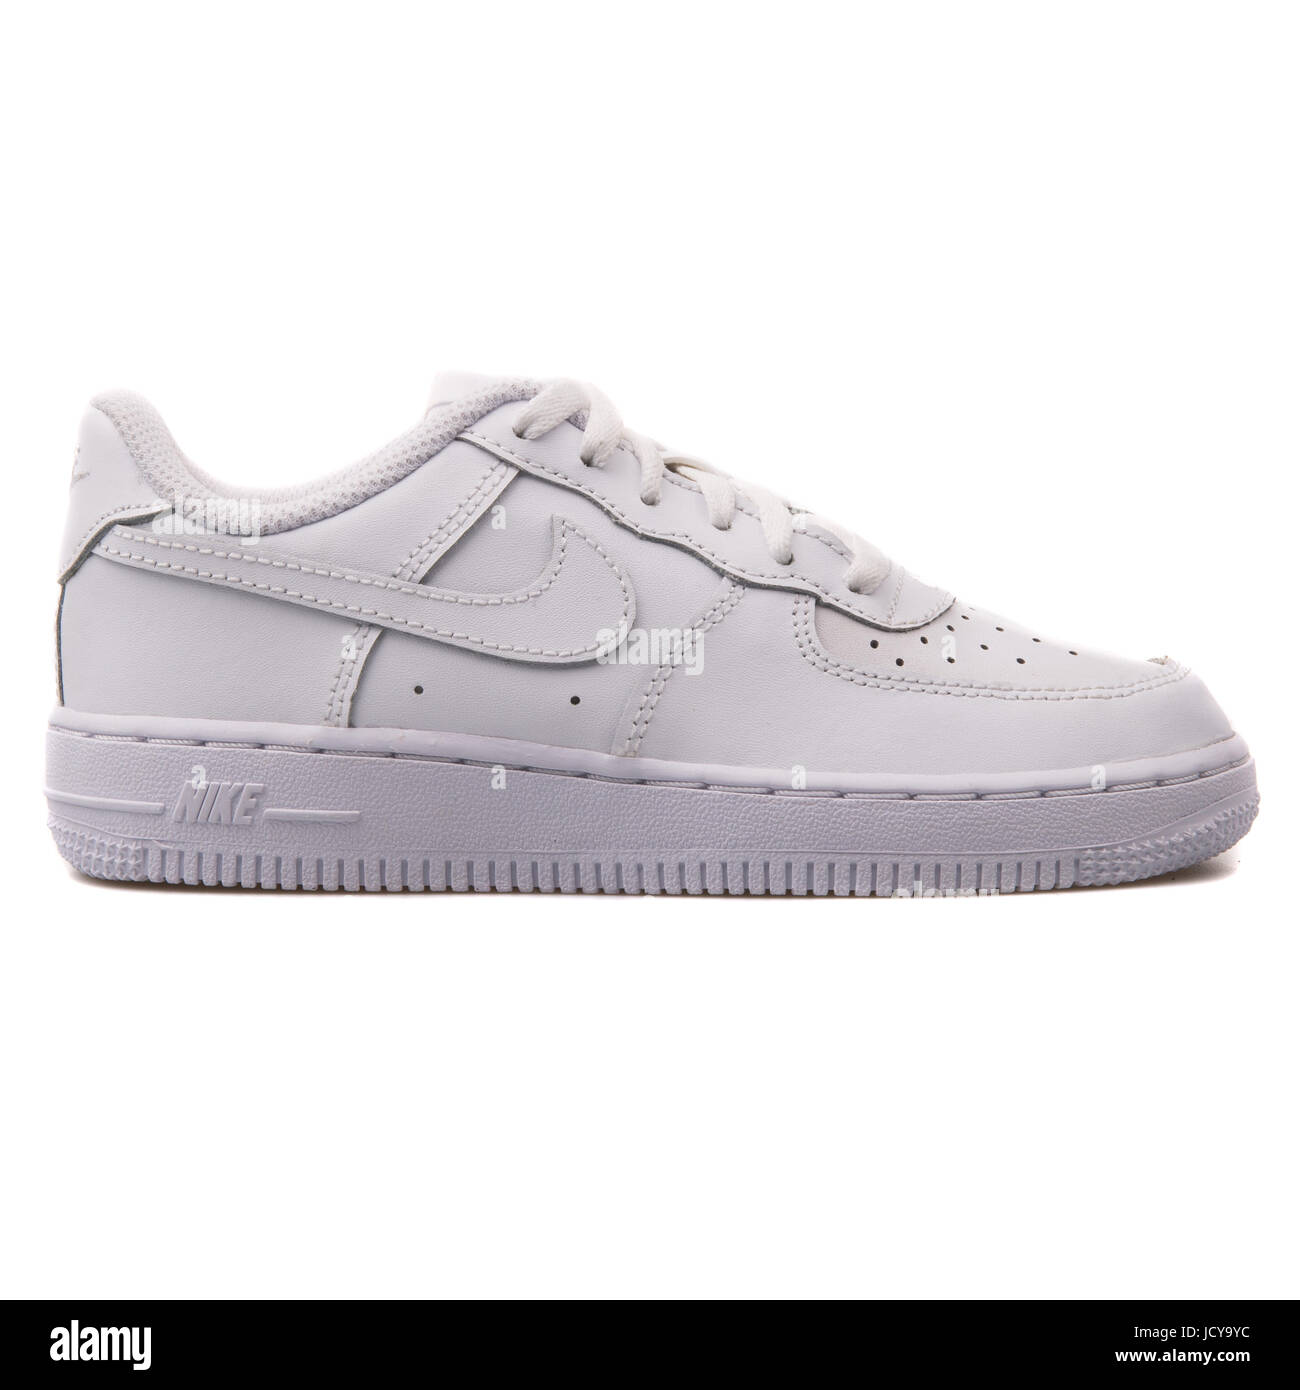 c4fe78977d3 Nike Force 1 (PS) White Youth s Sports Shoes - 314193-117 Stock ...